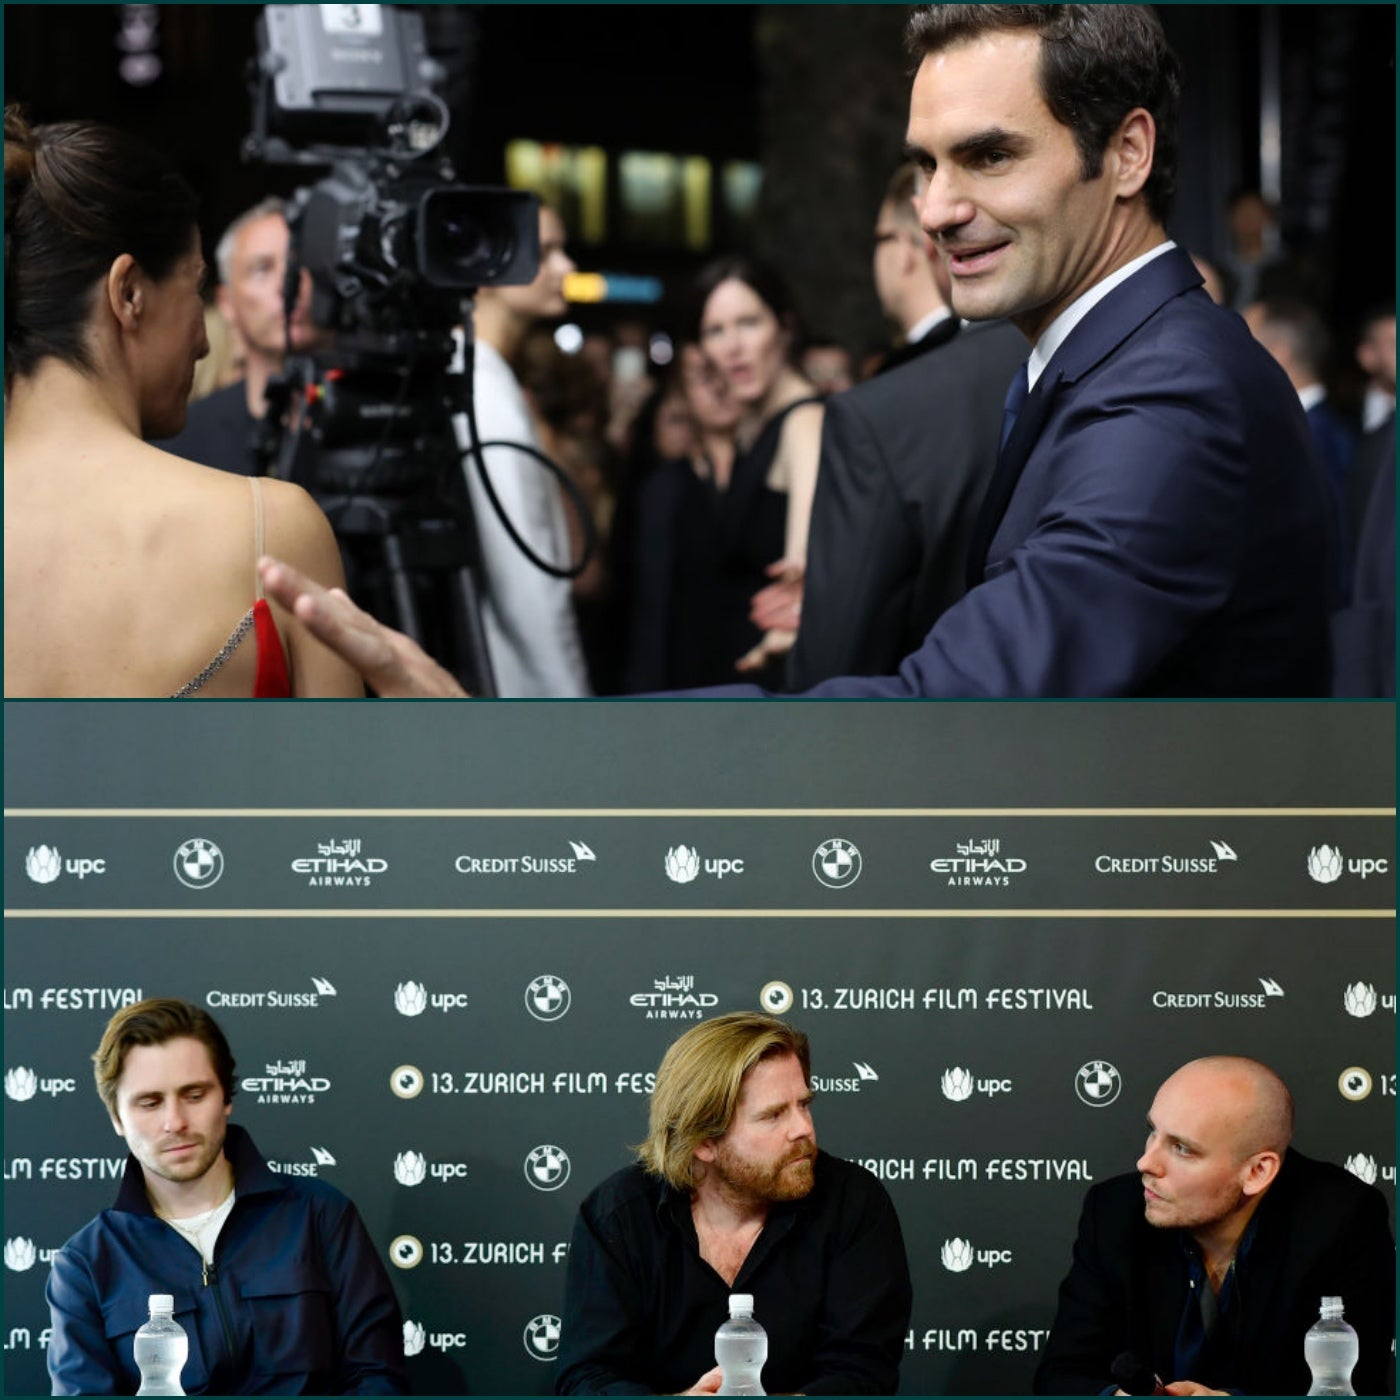 "Roger Federerand cast and director of the film 'Borg McEnroe"" at the 2017 Zurich Film Festival"